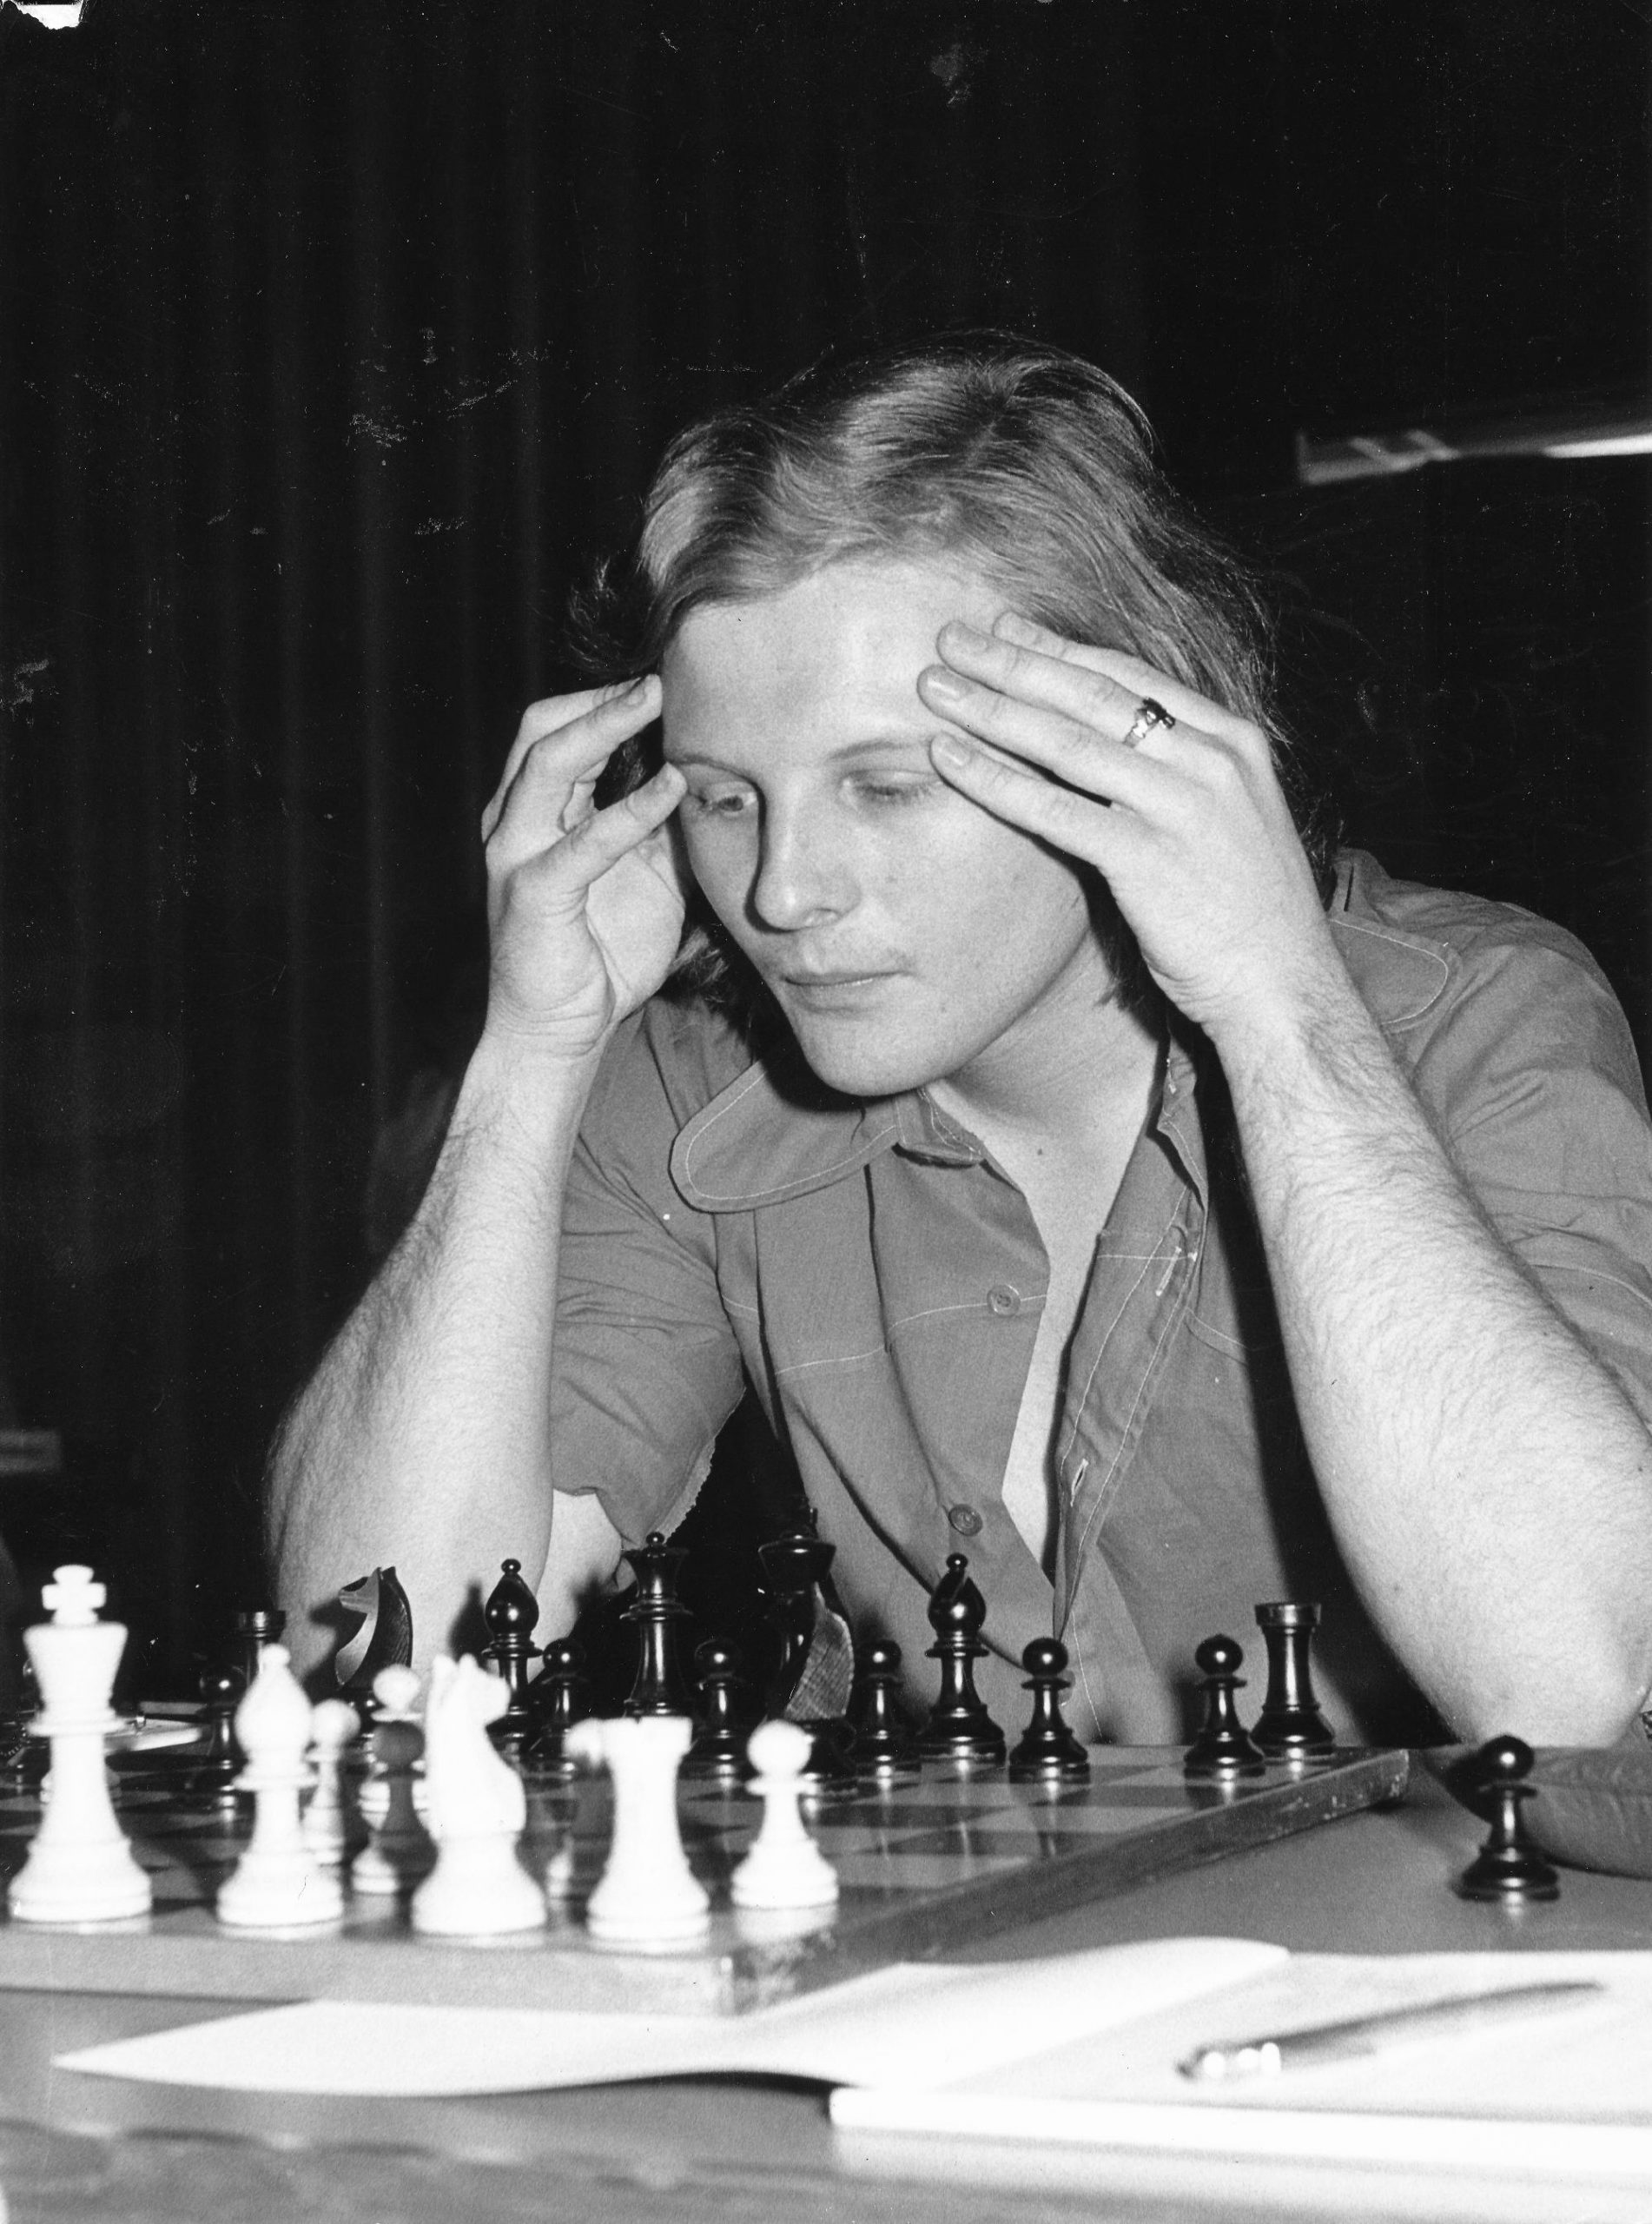 Tony Miles at Wijk aan Zee 1976. Korchnoi was first. Photo taken by Brian or Freddy Reilly